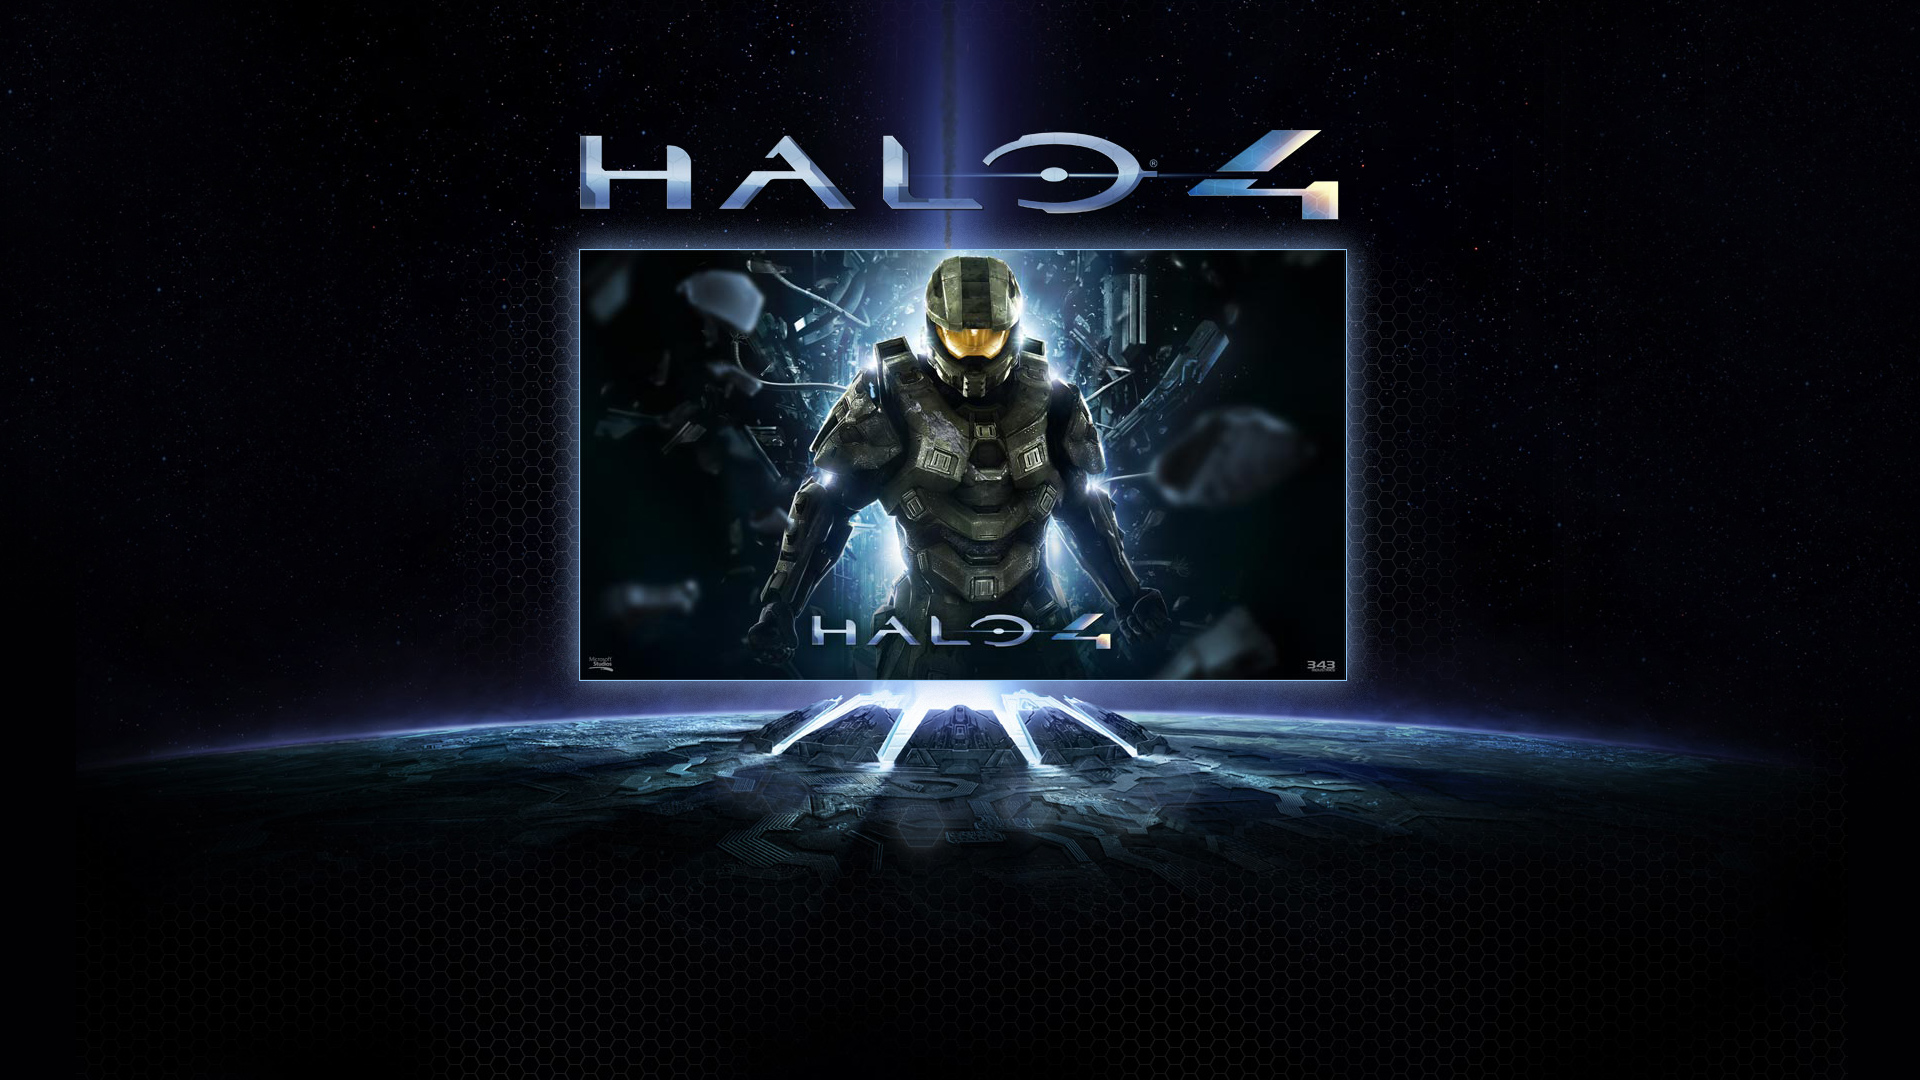 Halo 4 Game 669.33 Kb